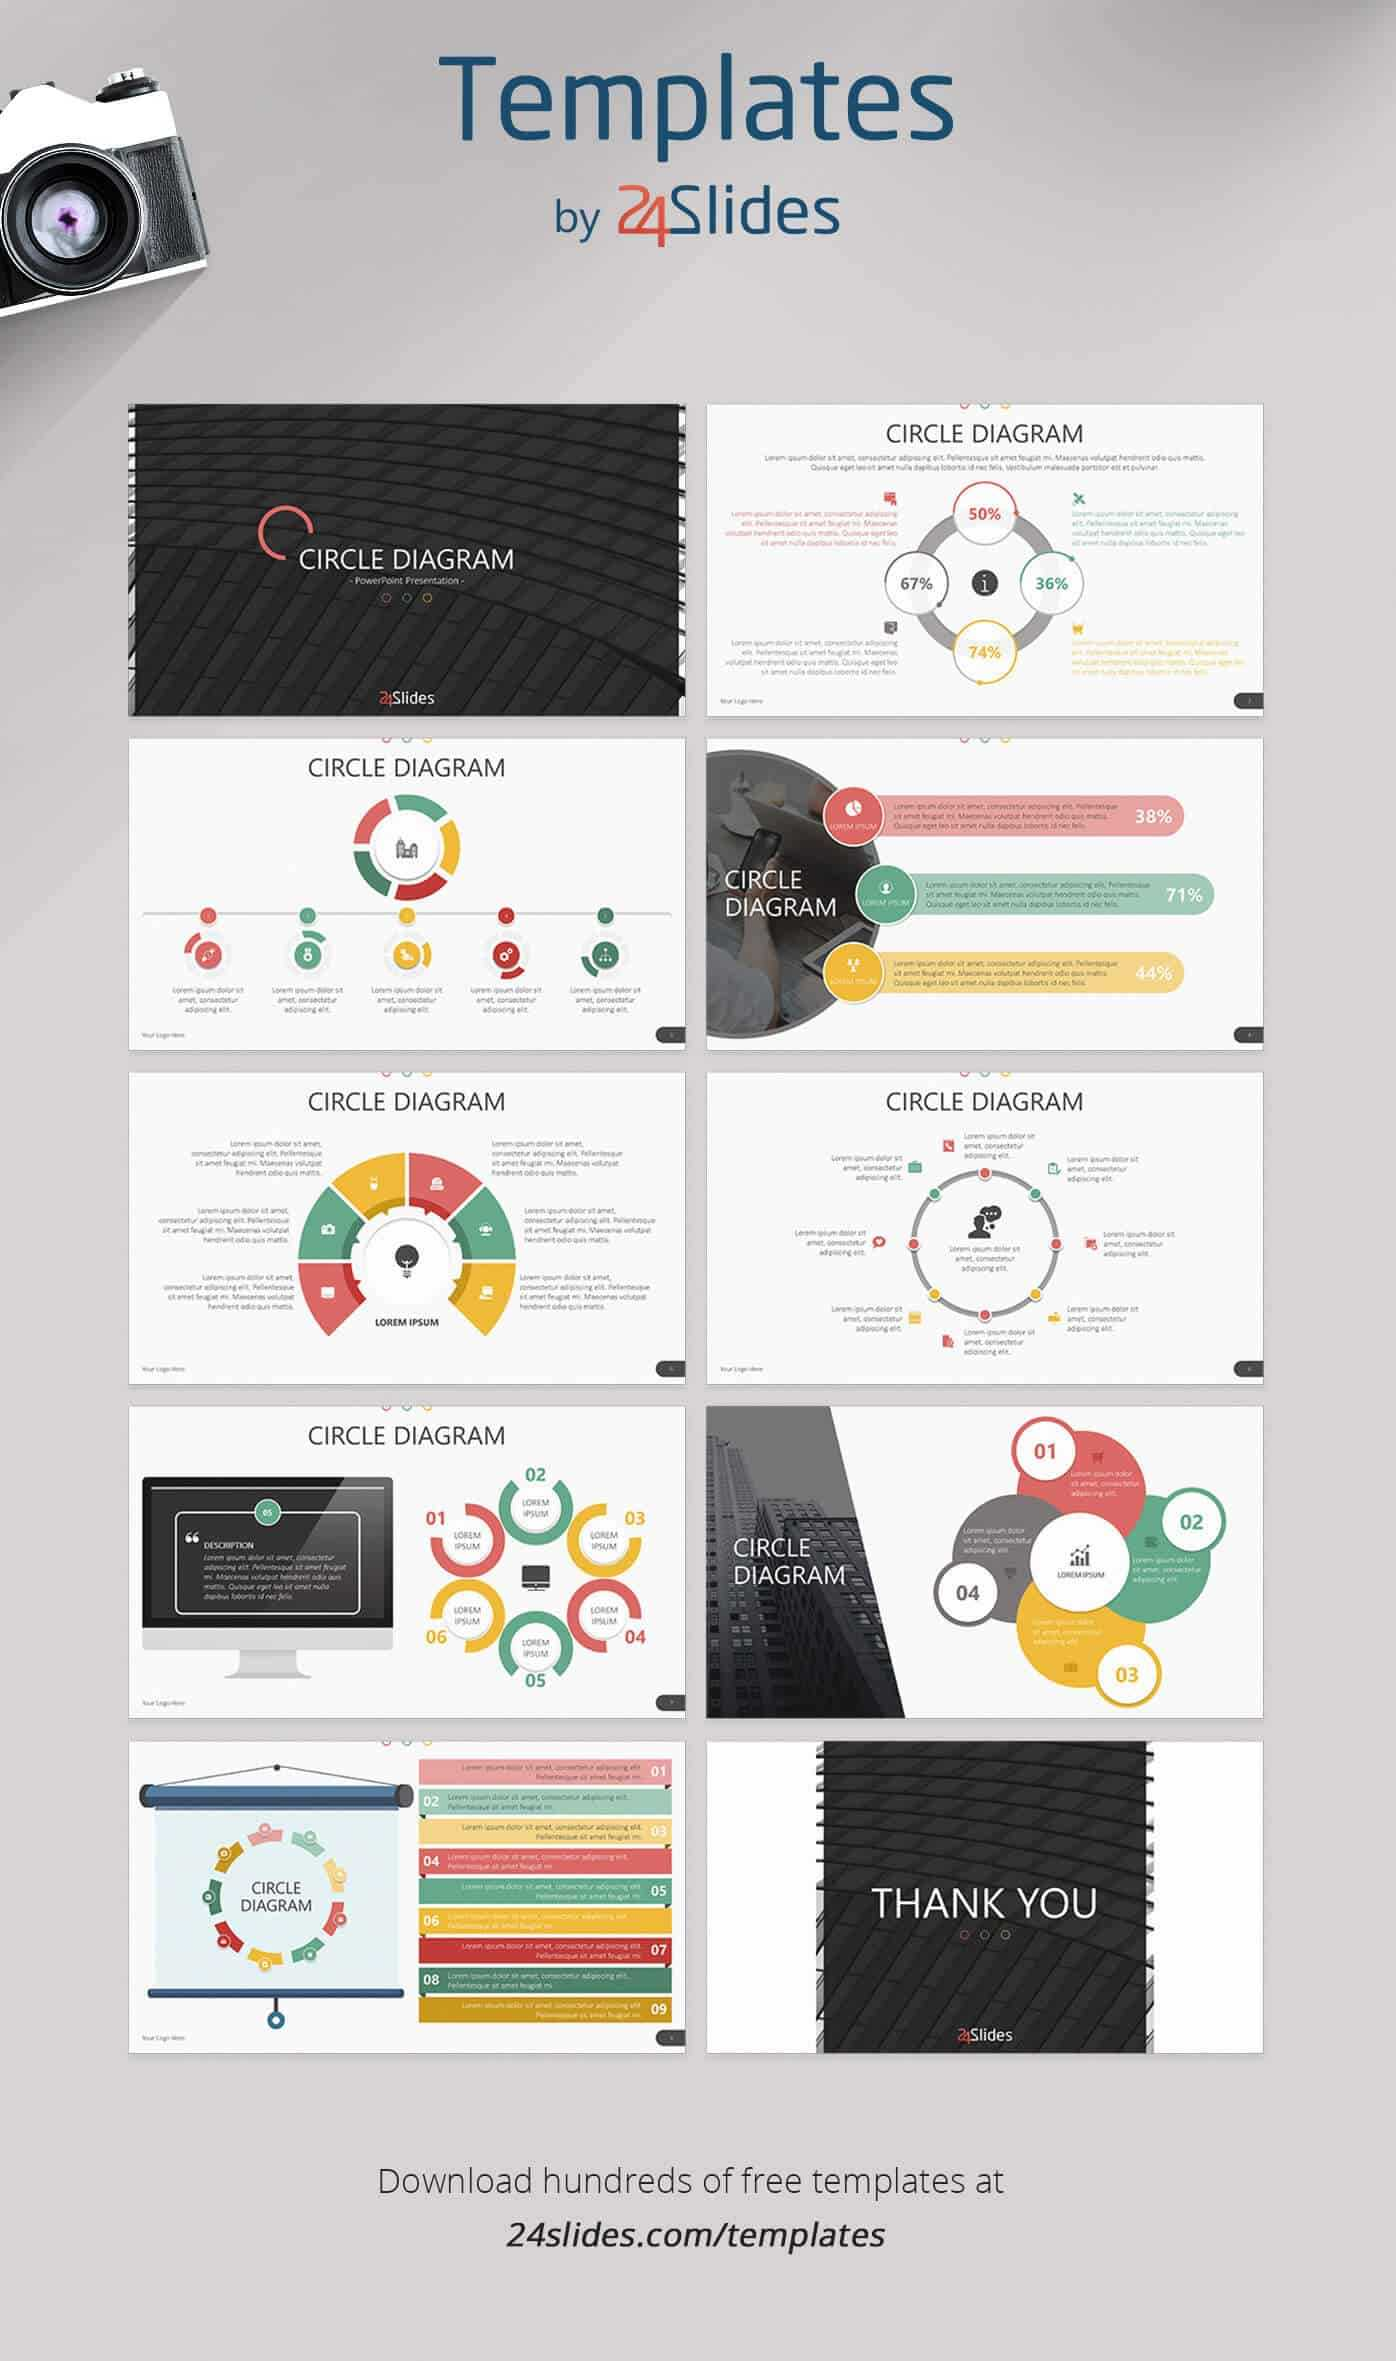 15 Fun And Colorful Free Powerpoint Templates | Present Better Pertaining To Sample Templates For Powerpoint Presentation